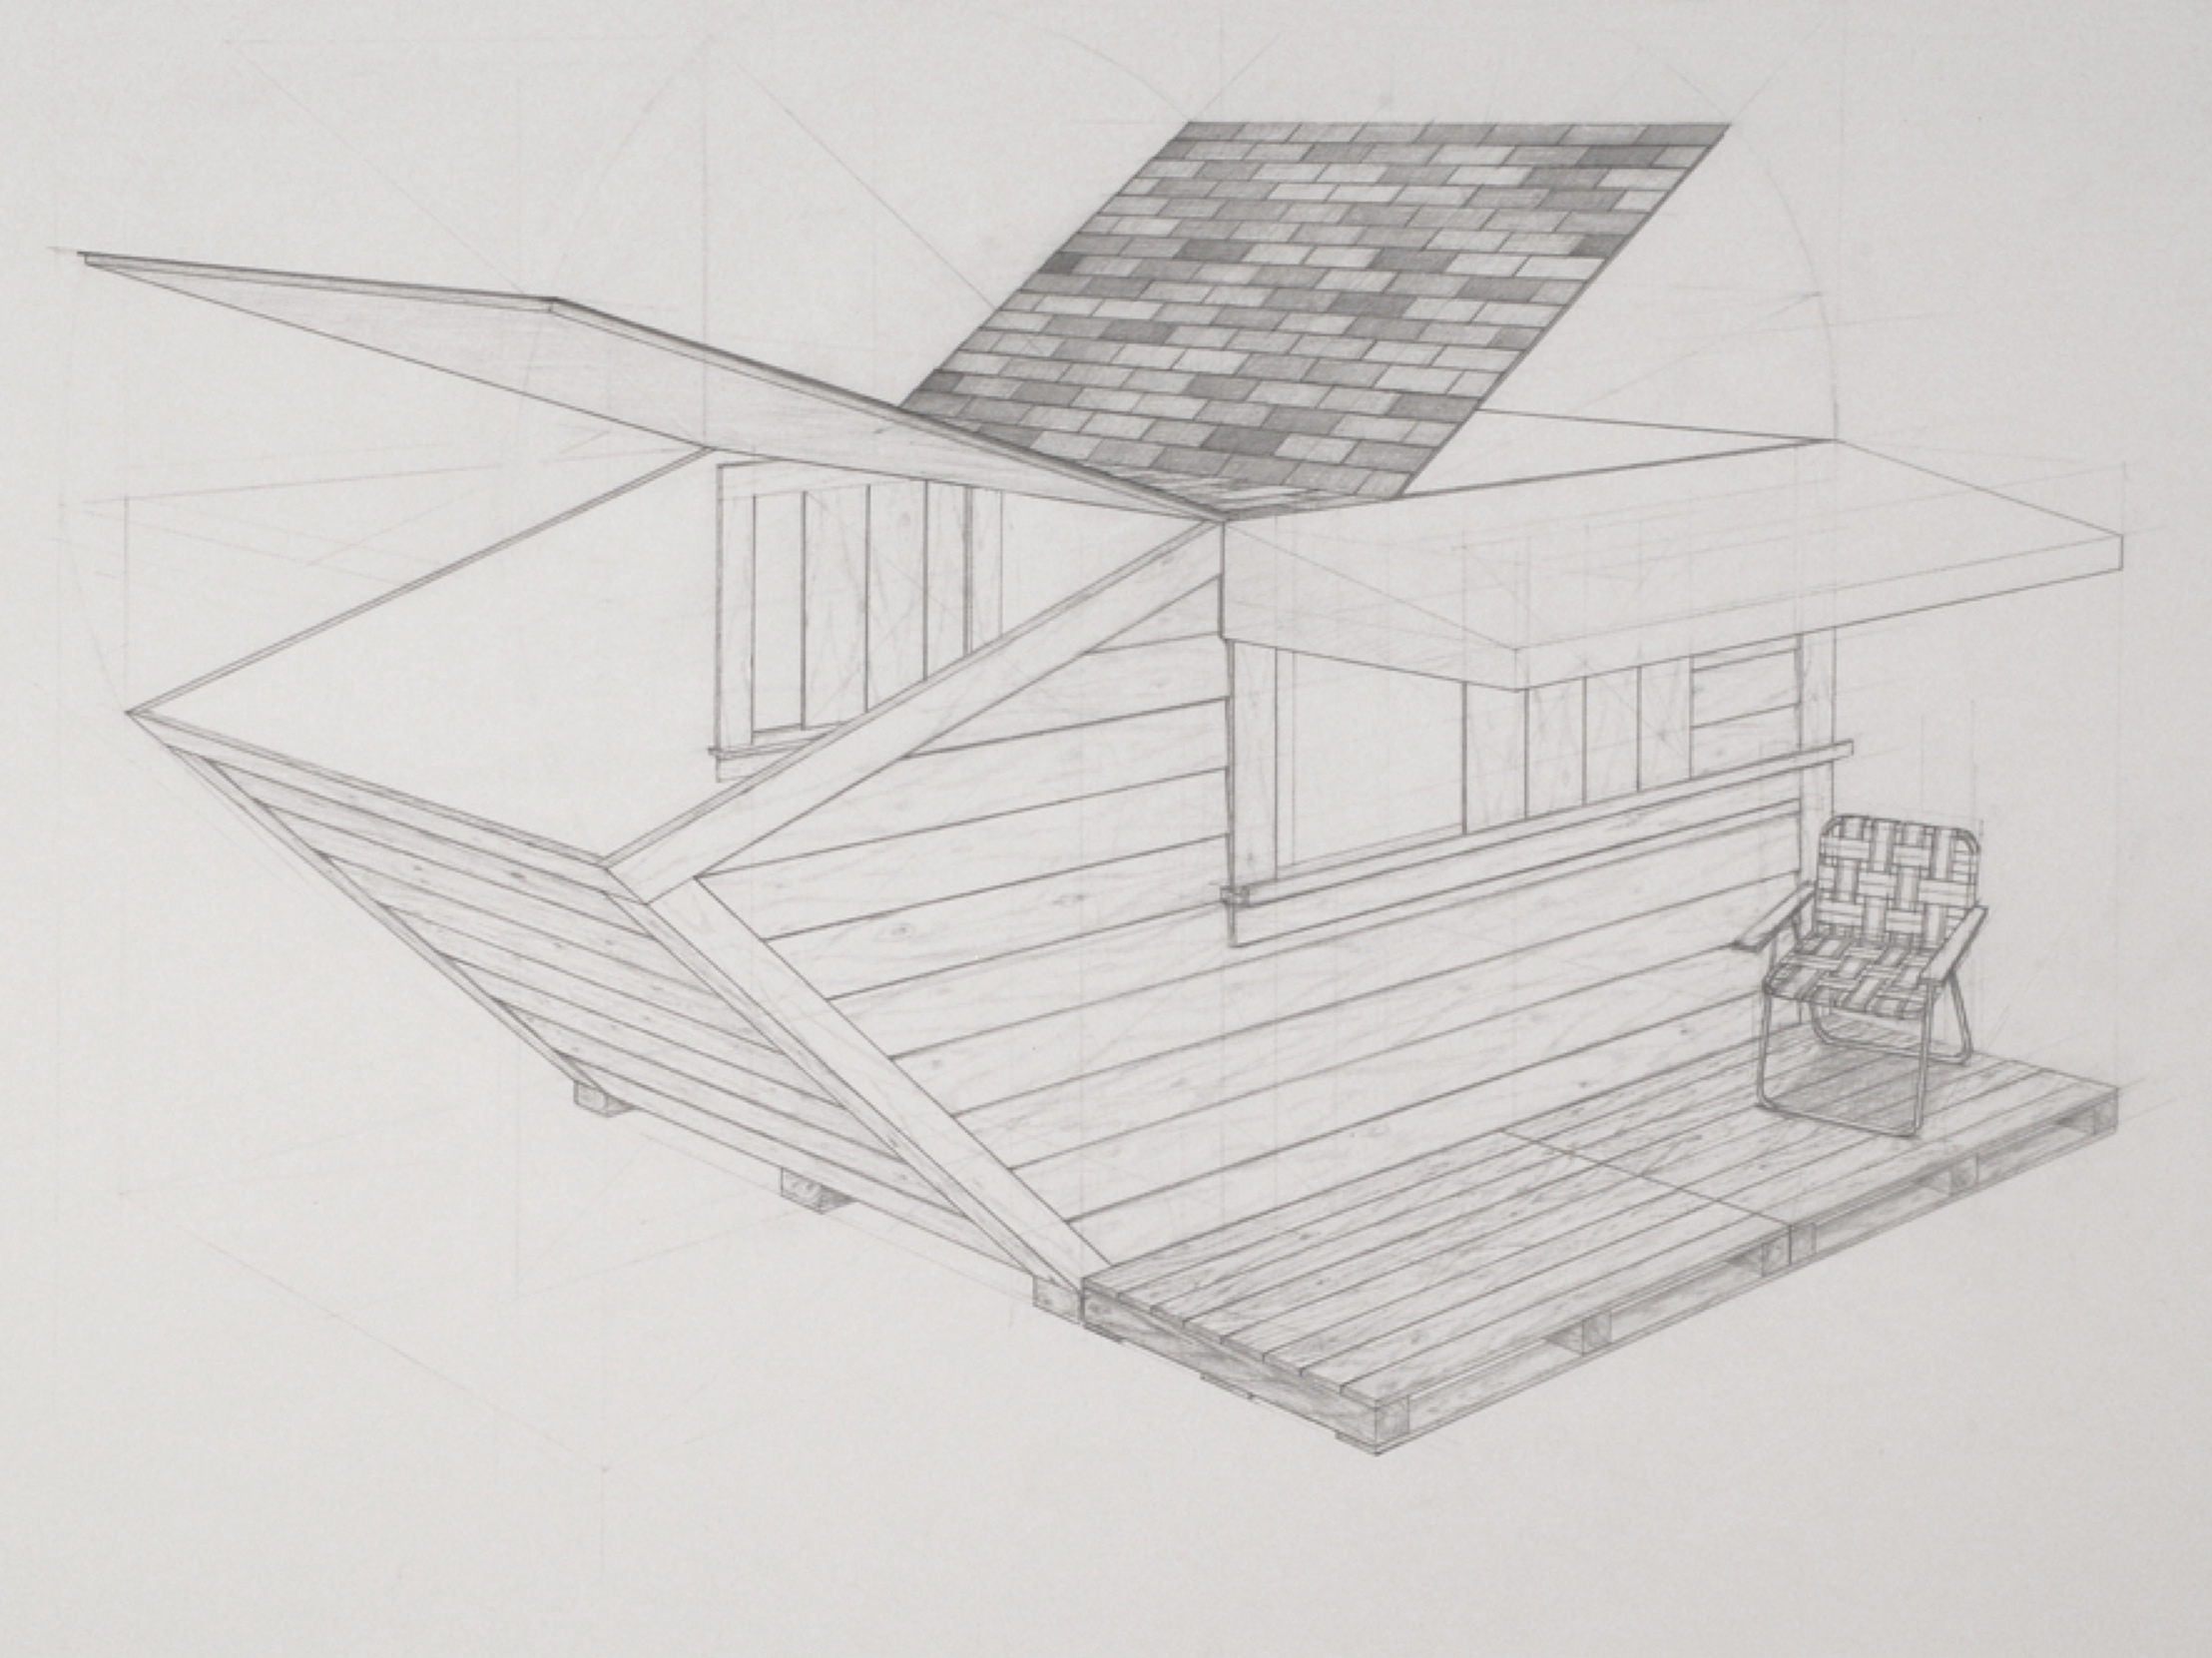 "Copy of Dumpster 1 / graphite on paper / 22 x 30"" / SOLD"